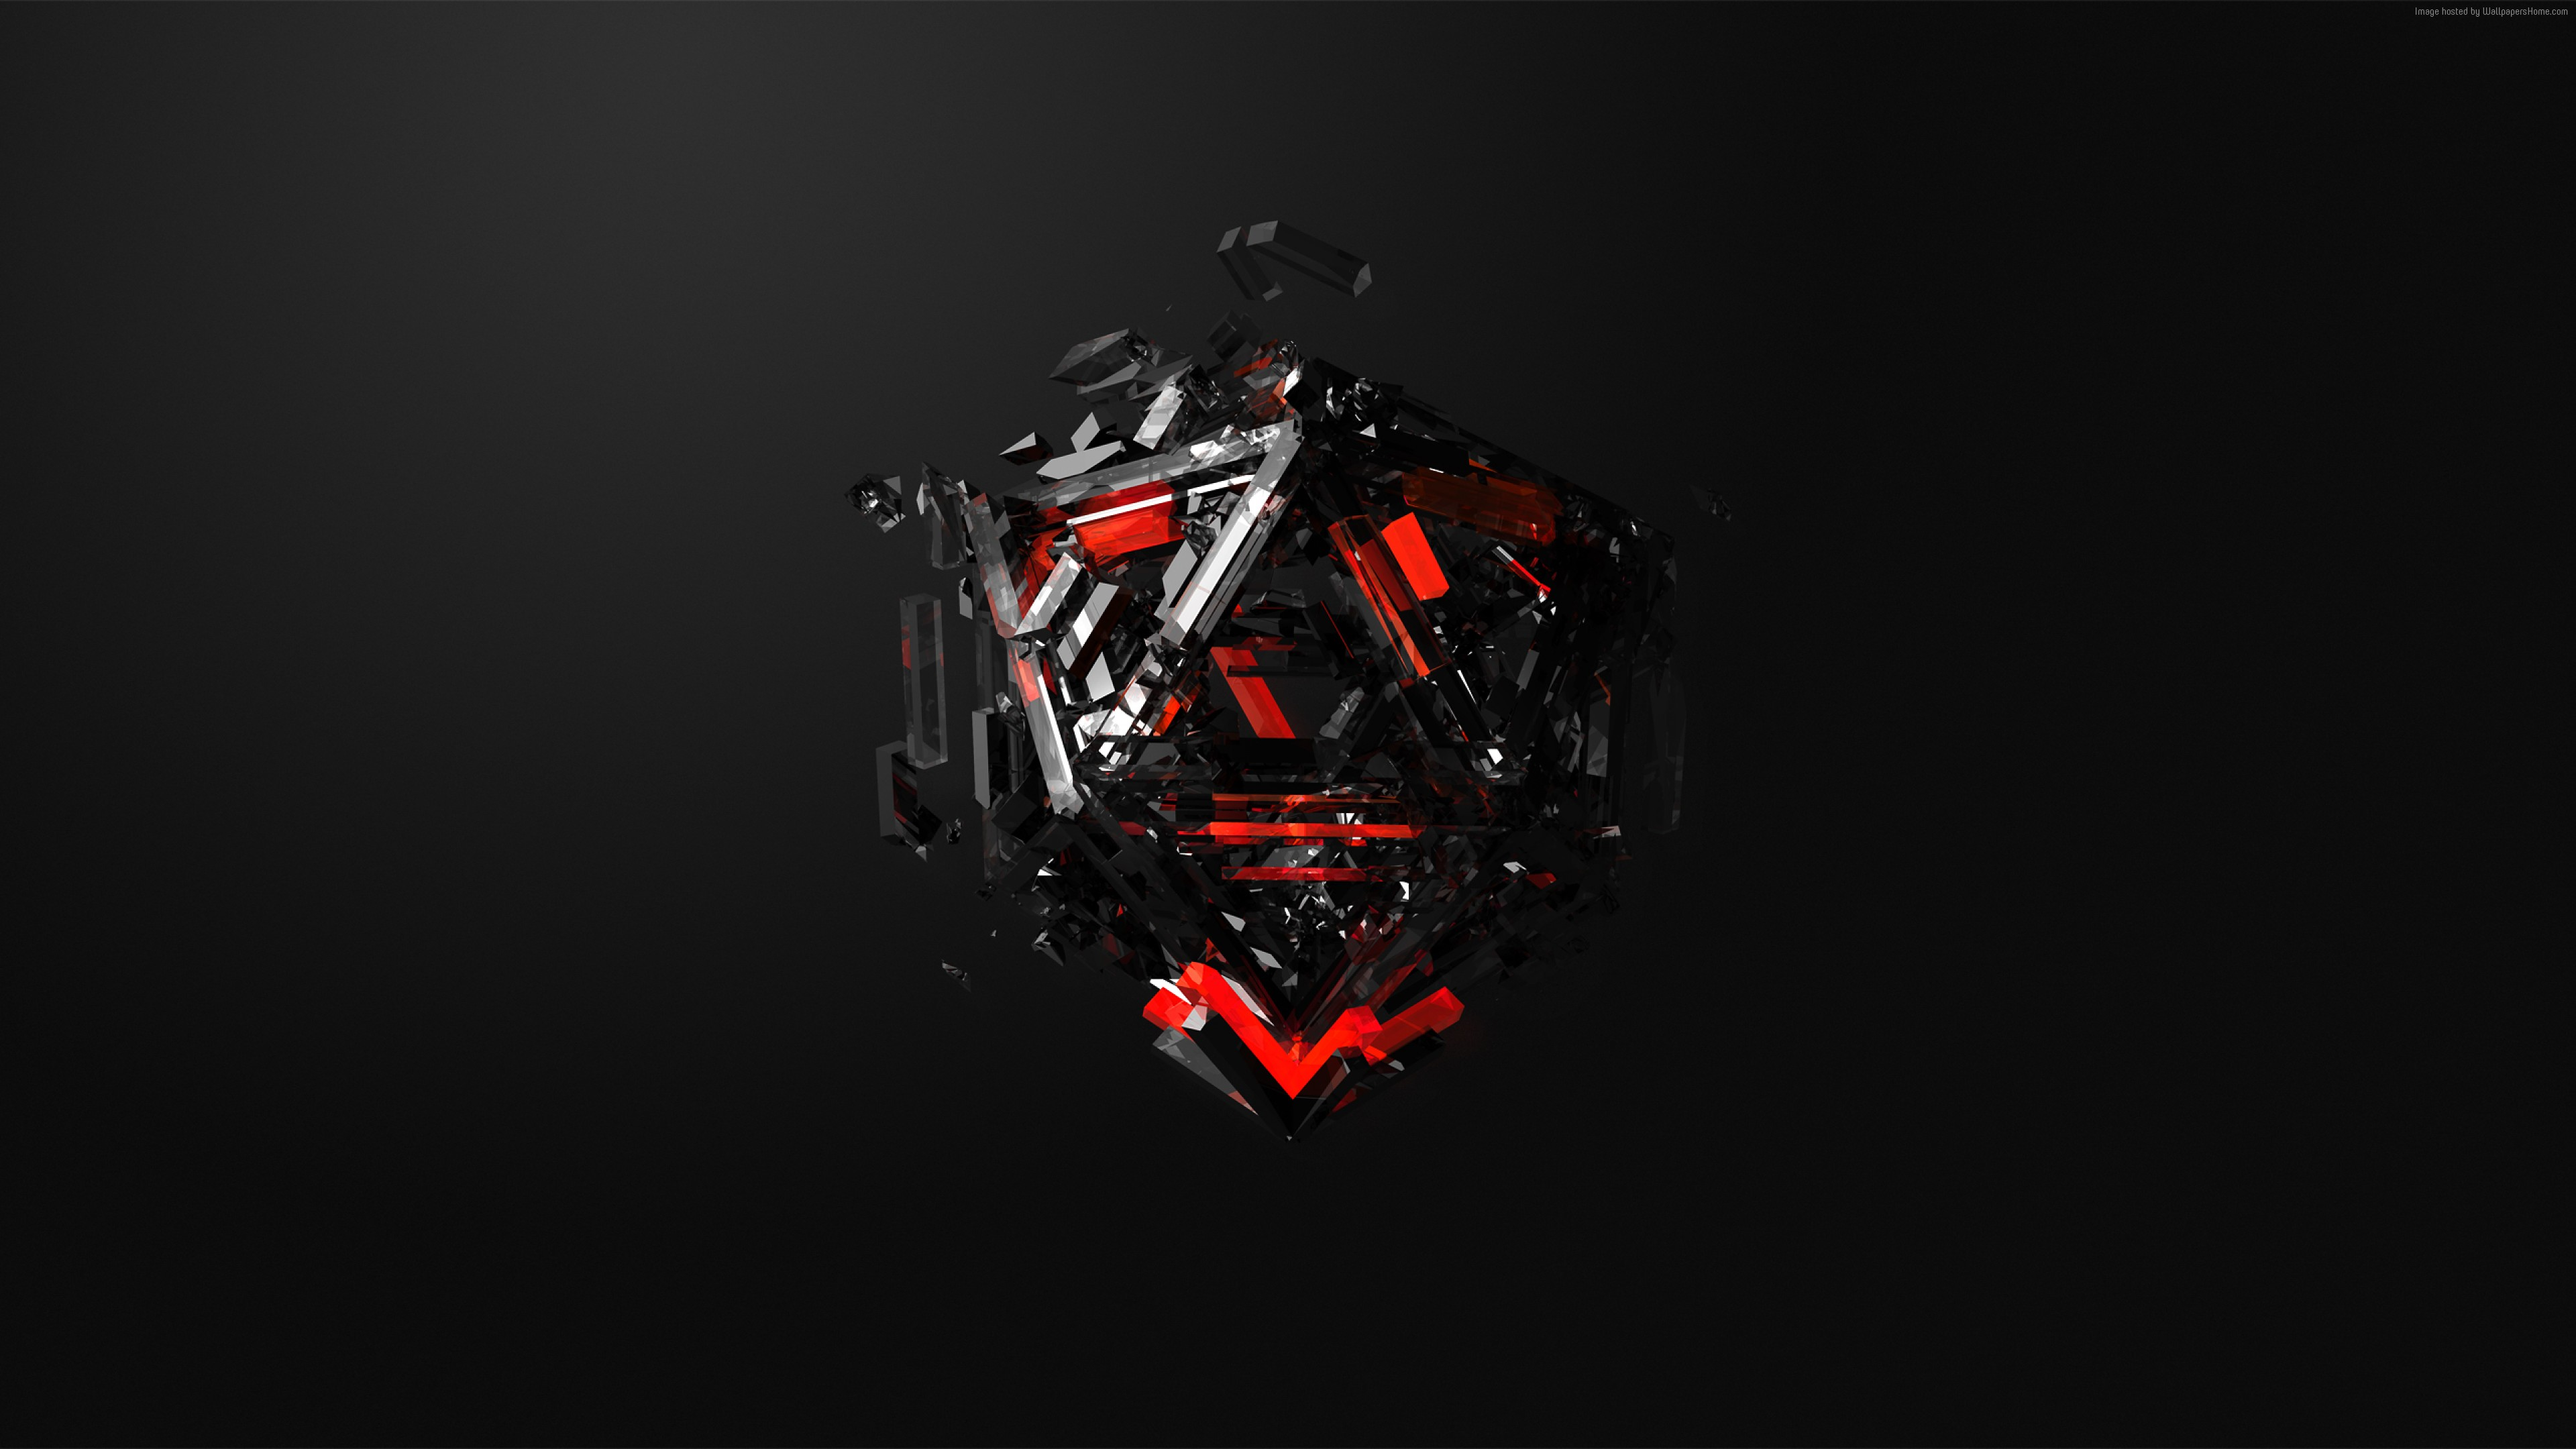 Wallpaper triangles, 3D, red, black, HD, Abstract, hd walepaper, free wallpaper